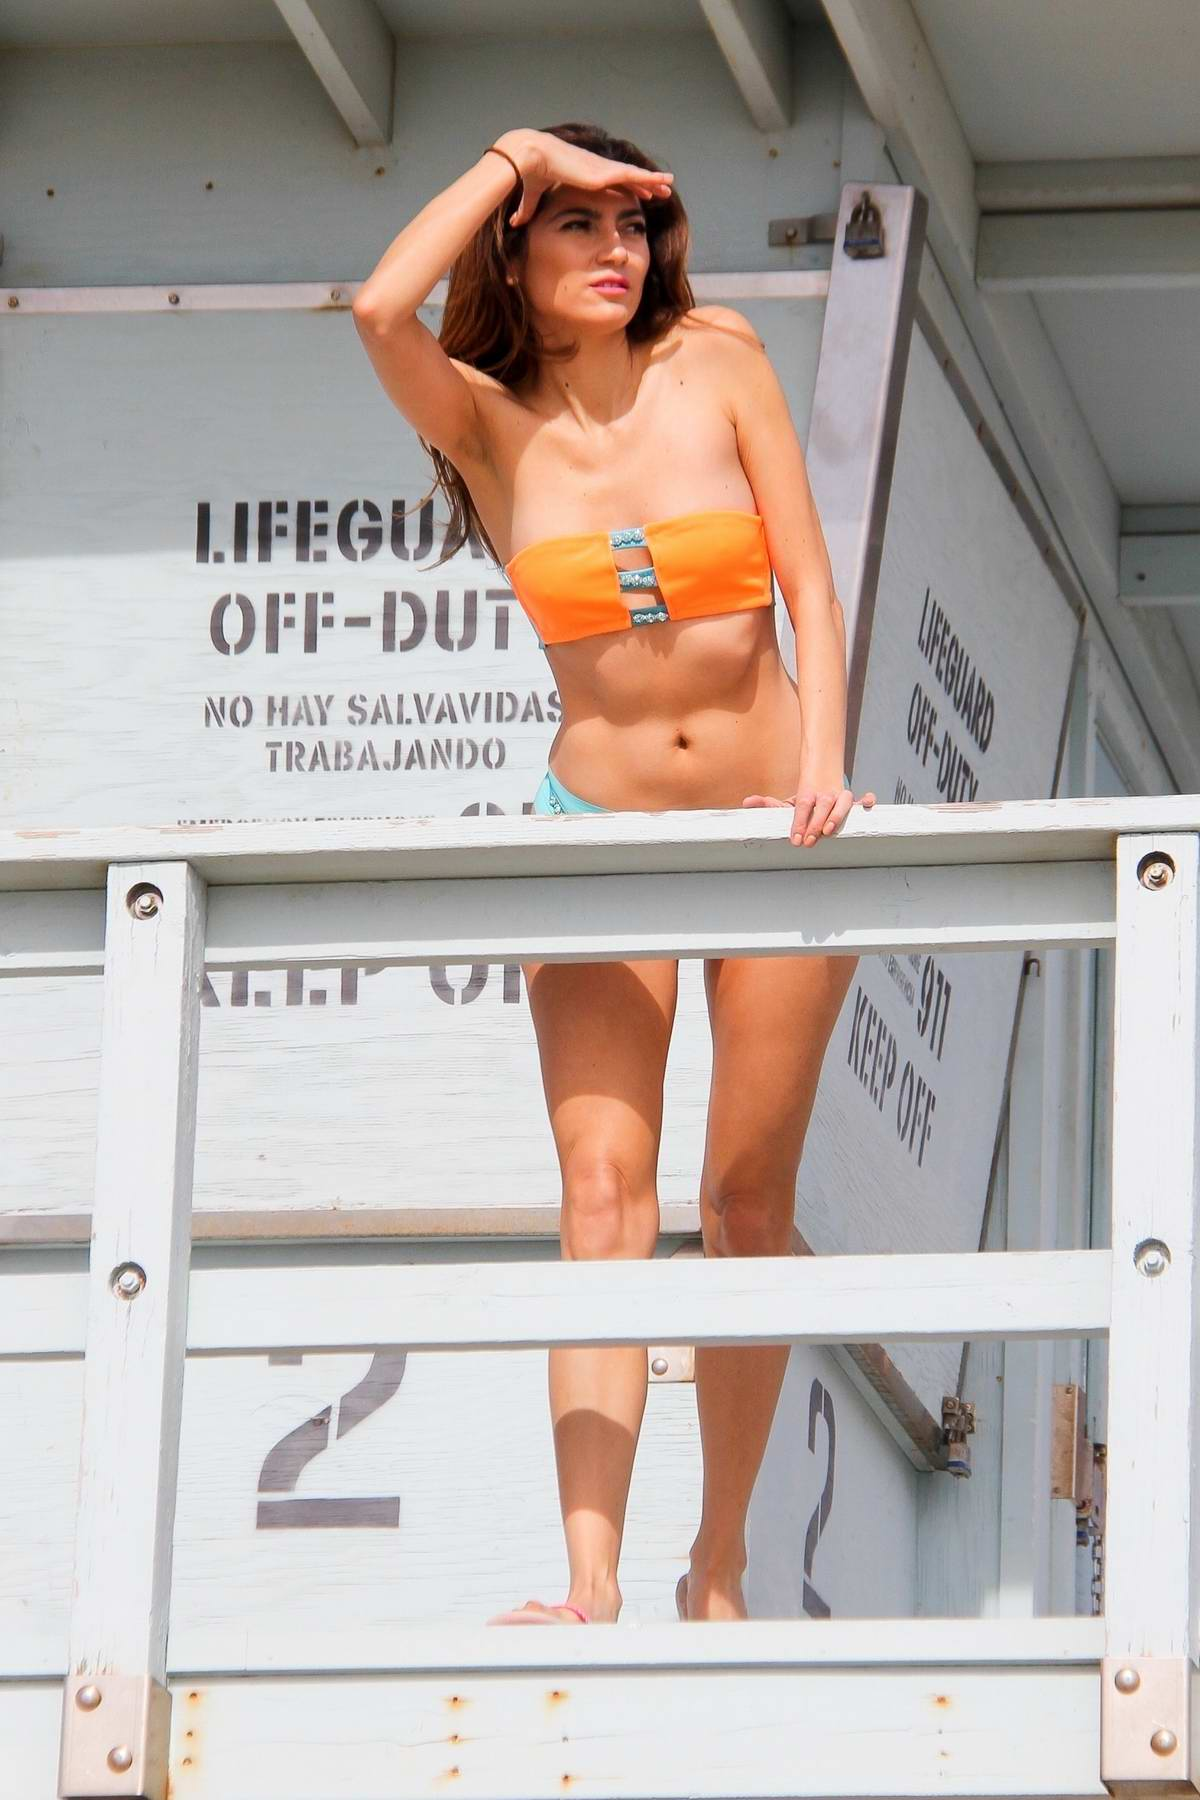 Blanca Blanco in an orange bikini plays lifeguard for a day in Malibu, California